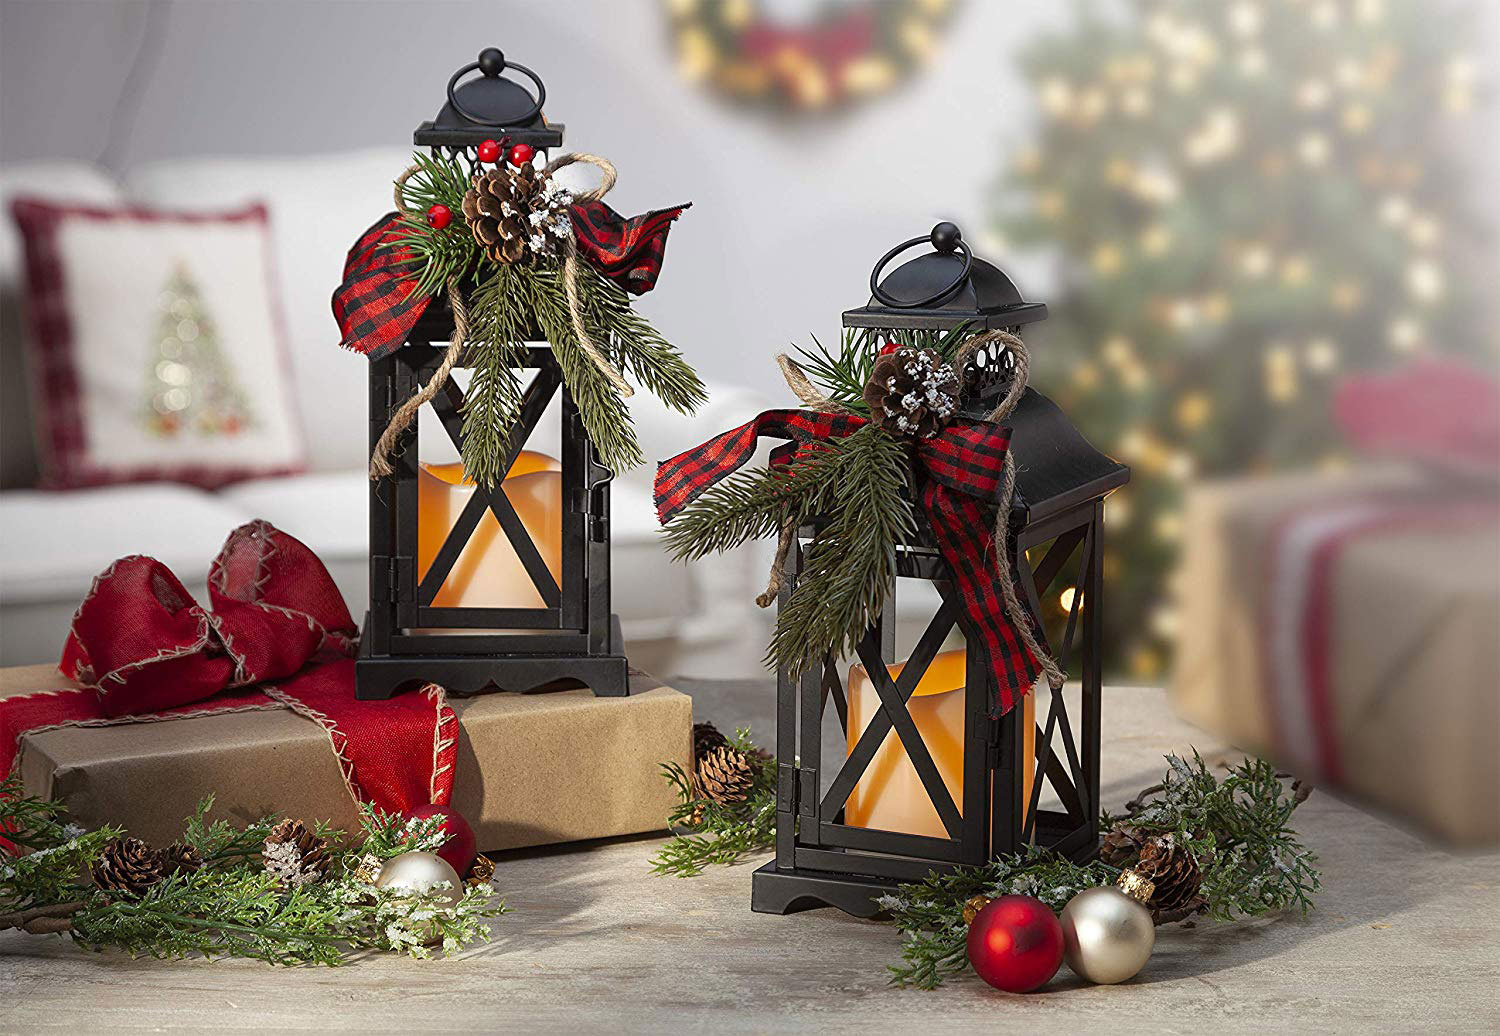 Christmas Lanterns.Set Of 2 Battery Operated Lighted Christmas Metal Holiday Lanterns With Floral Accents And Timer